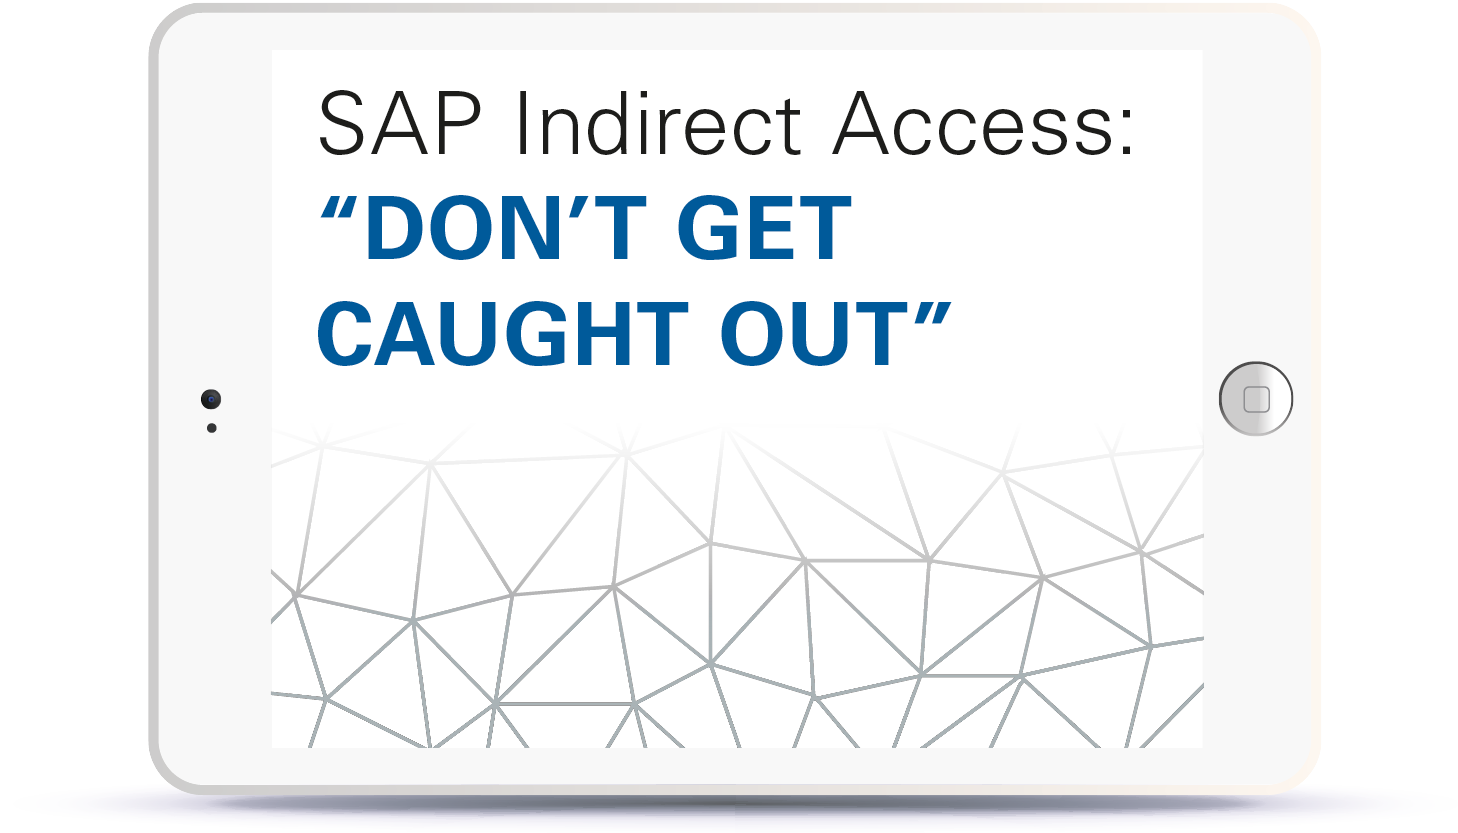 07_SAP indirect access.png